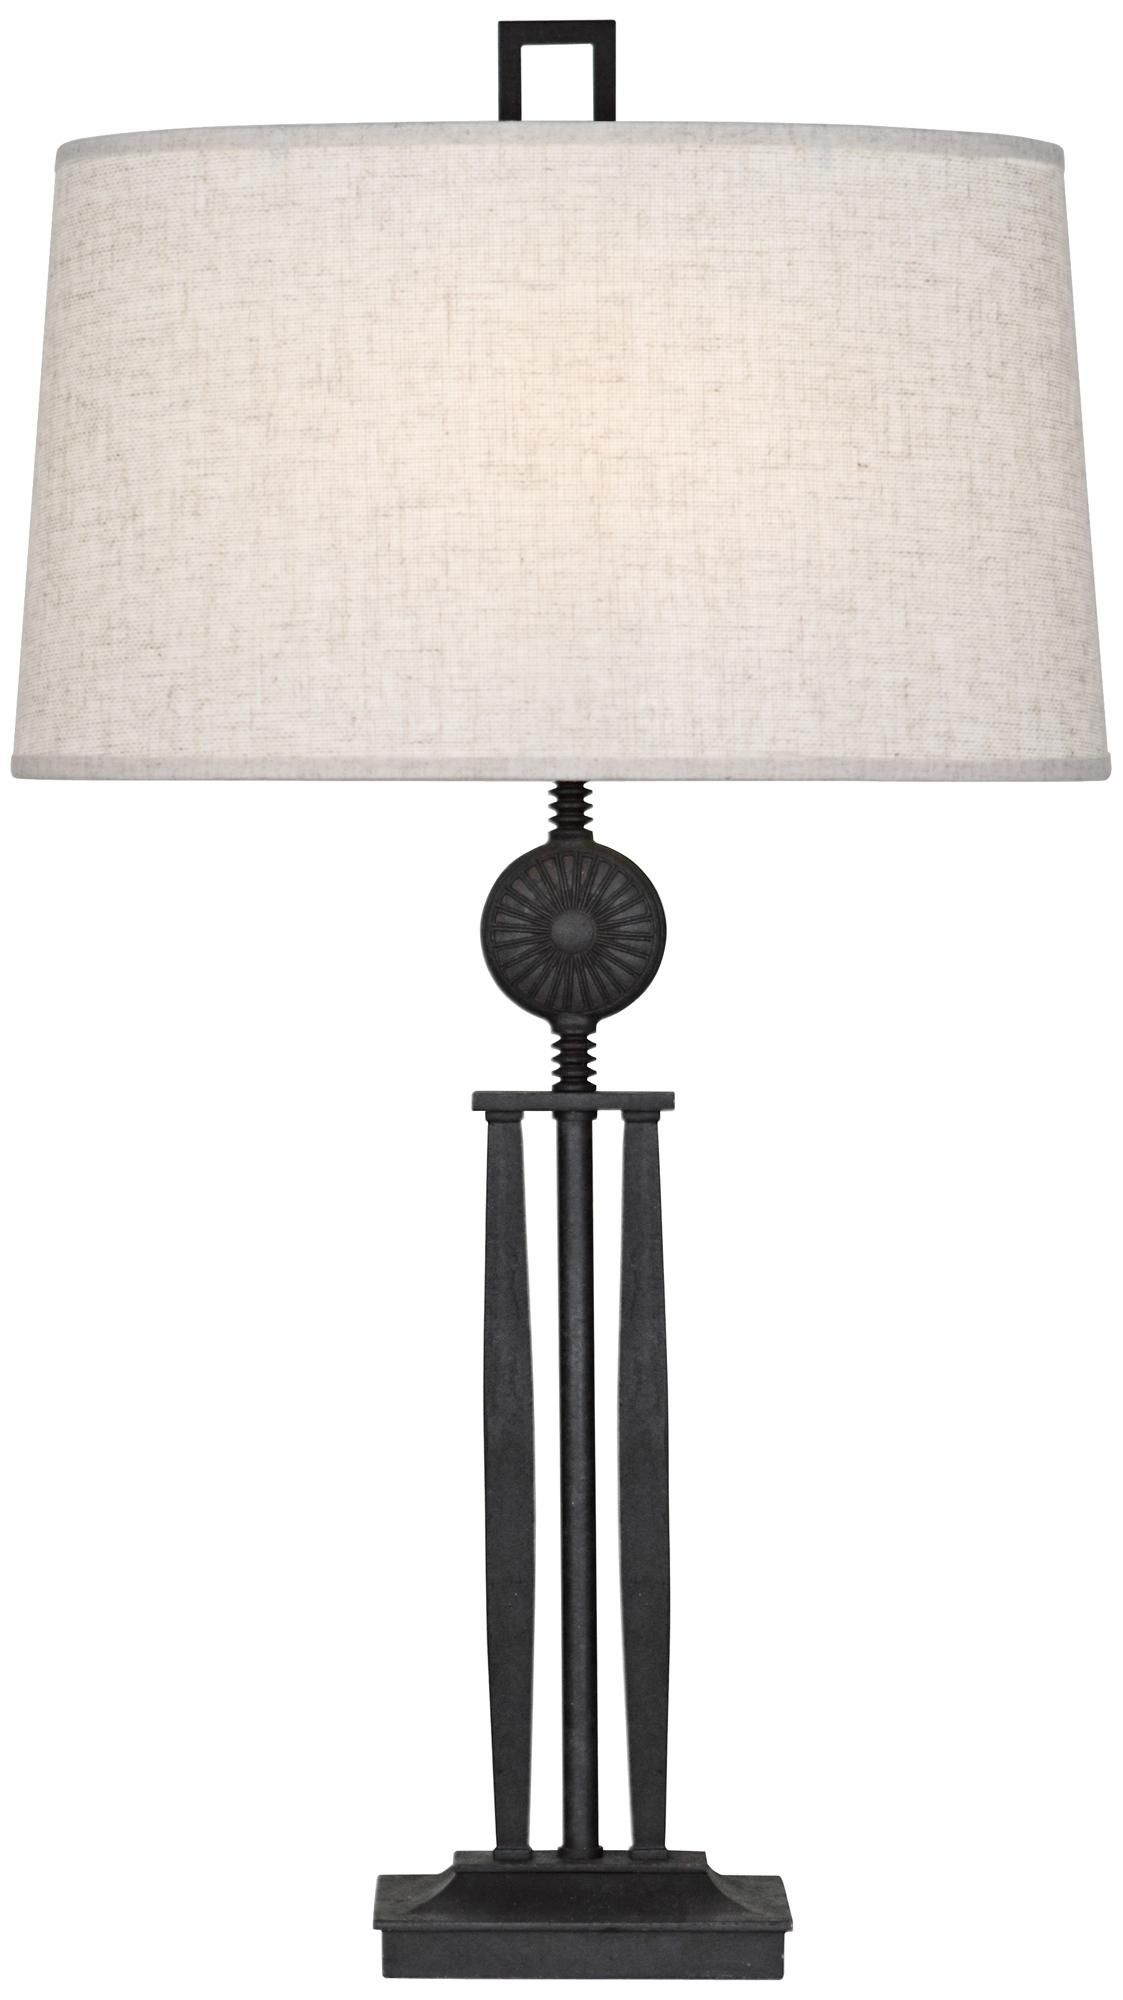 New table lamps in wrought iron